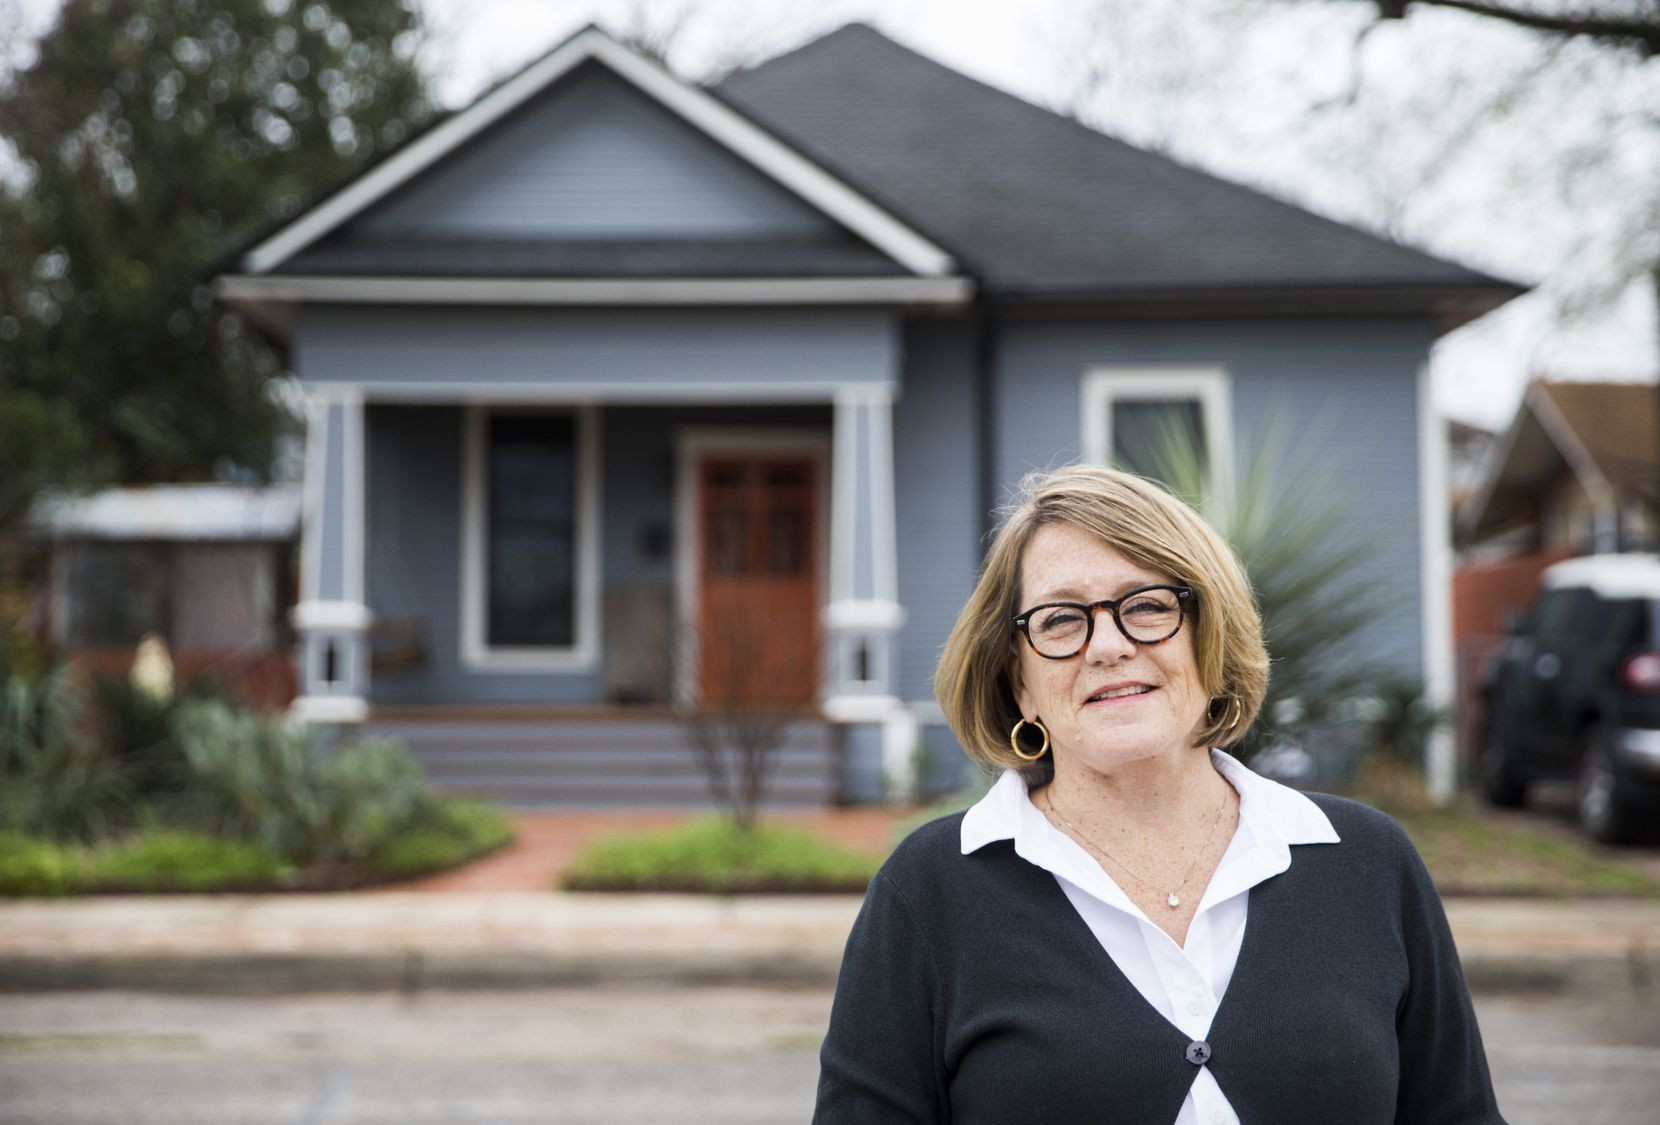 Kathi Chandler poses for a photo outside of her AirBnb on Tuesday, February 18, 2020 on N Windomere Ave in Dallas.